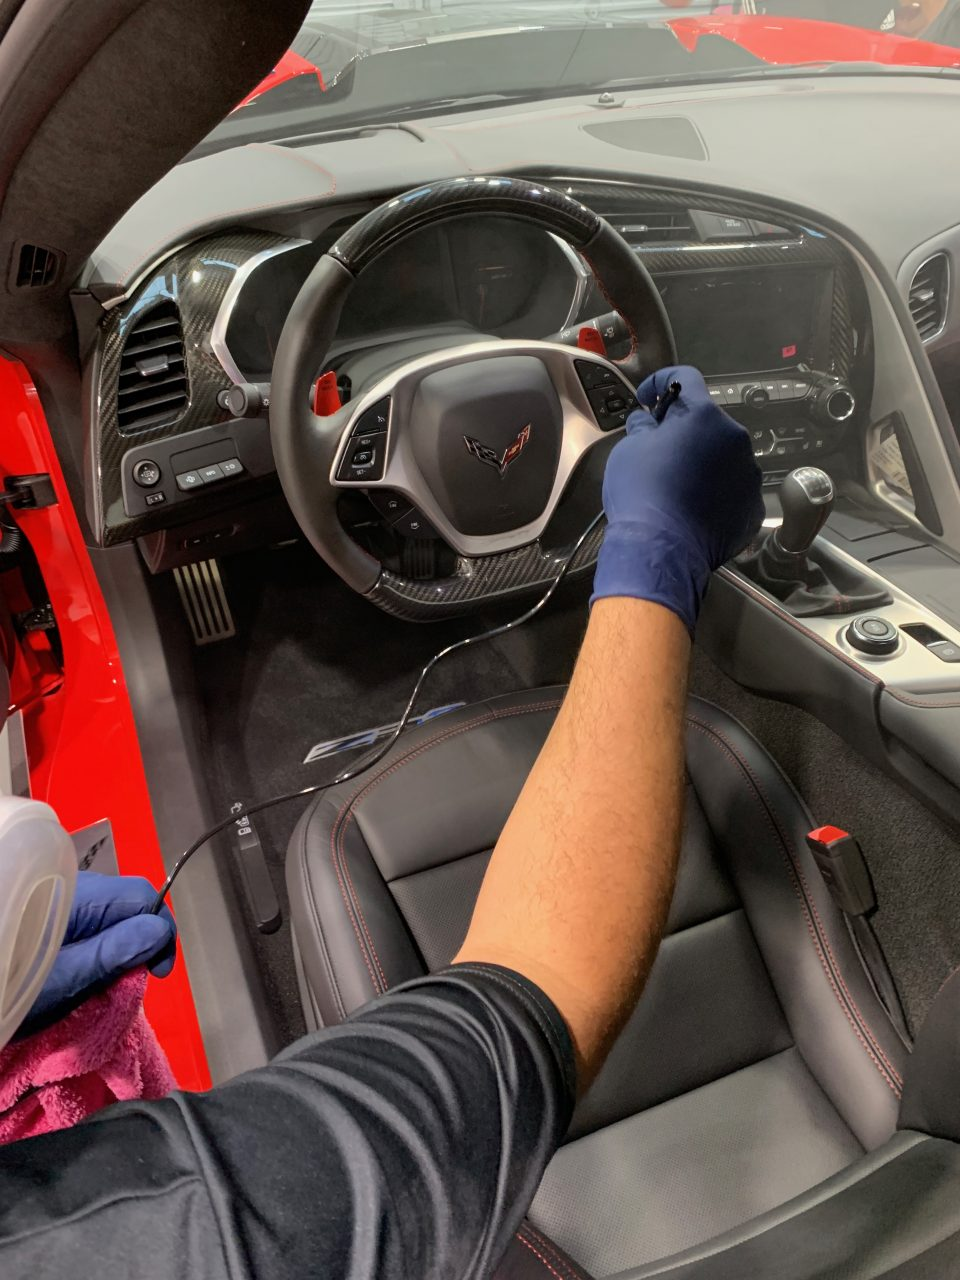 Ceramic Coating Protection for Interior of Car